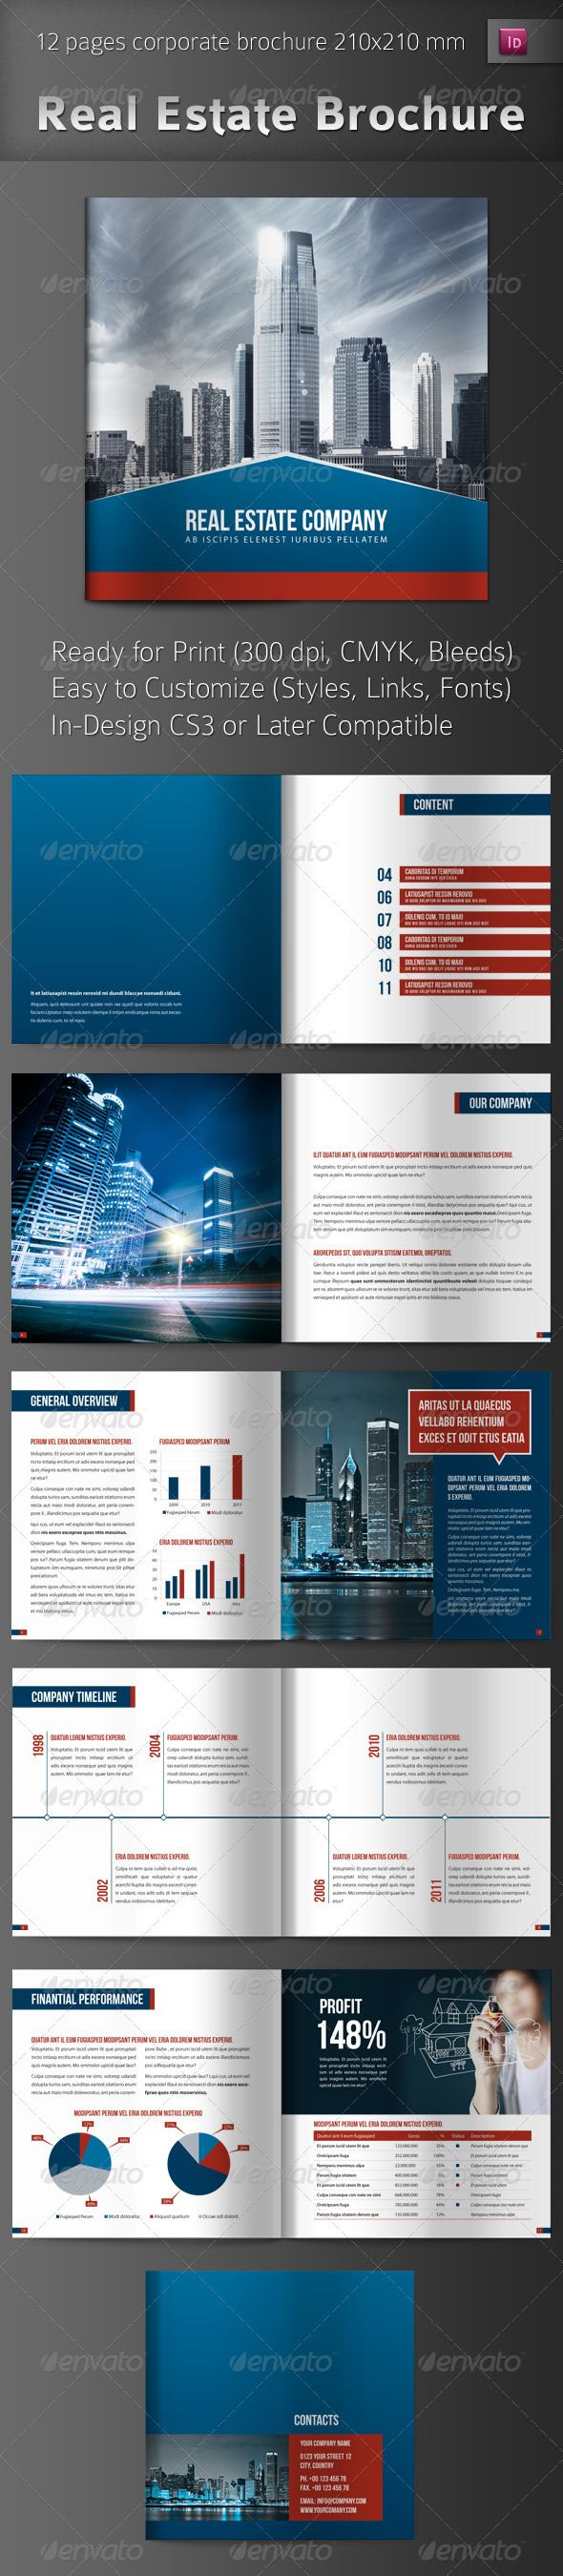 Real Estate Brochure GraphicRiver This is a 12 page InDesign brochure perfect for Real Estate